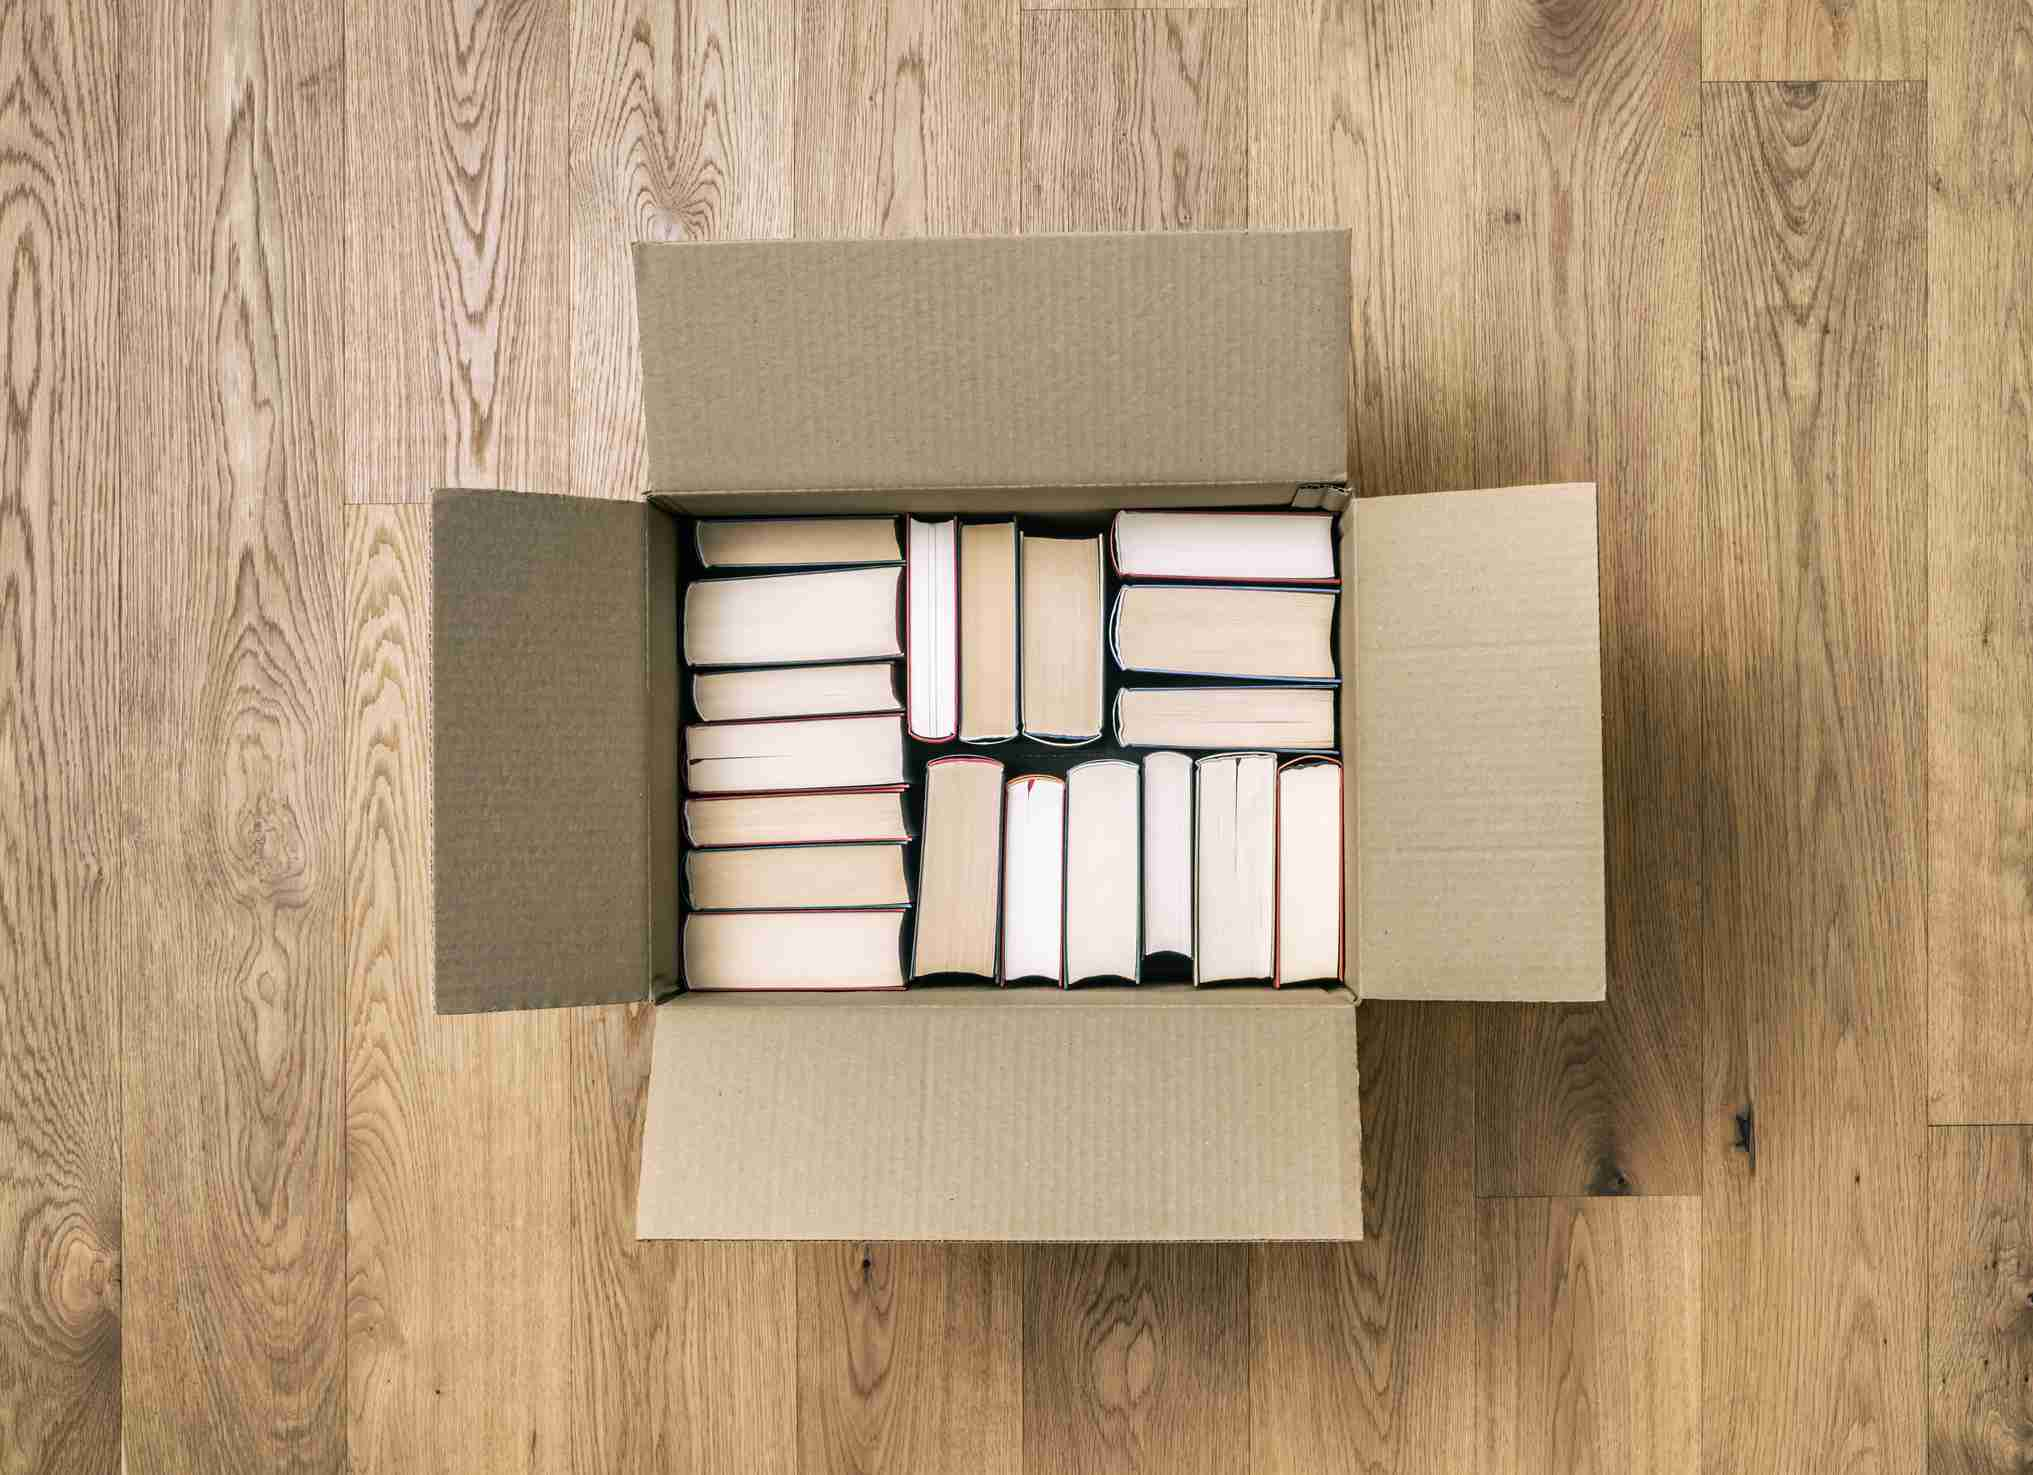 Books in cardboard box